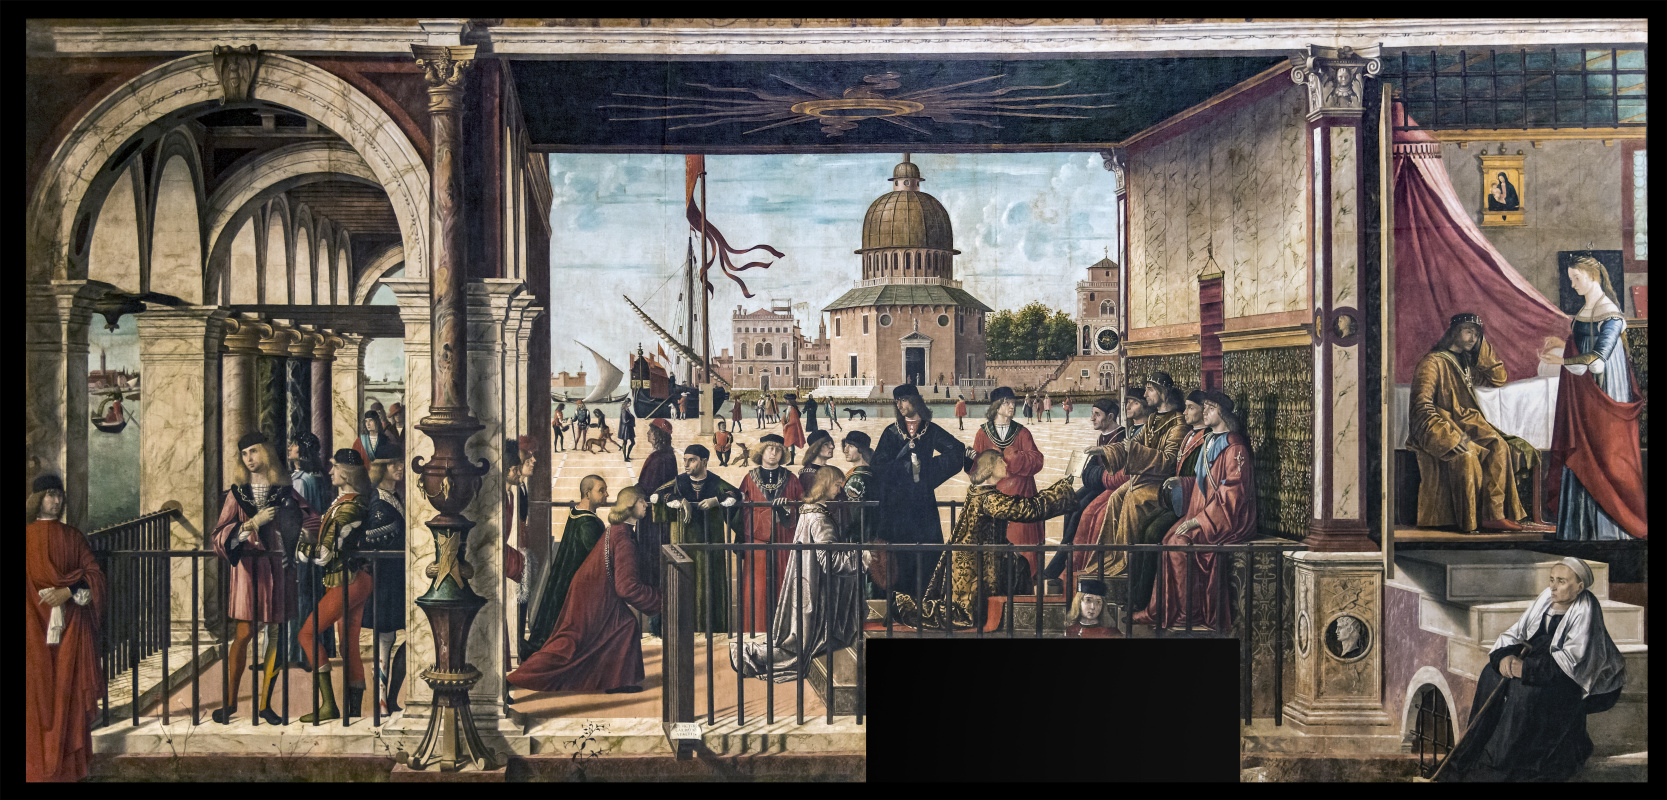 Vittore Carpaccio. The life of Saint Ursula. The arrival of the English ambassadors to the king of Brittany